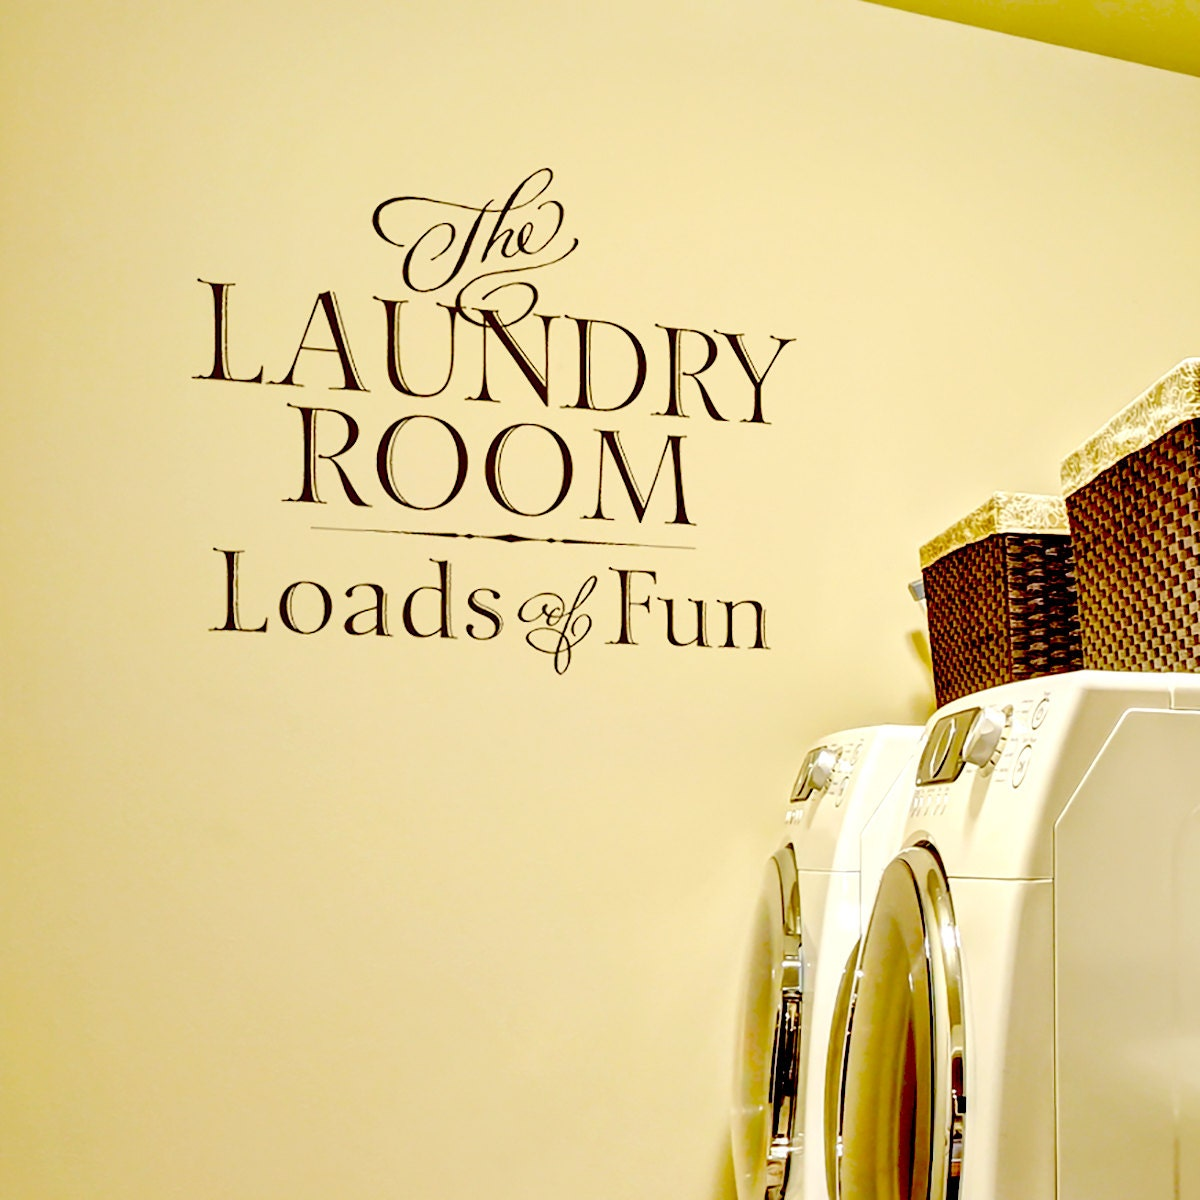 The Laundry Room Loads Of Fun Decal Laundry Room Decor The Laundry Room Loads Of Fun Laundry